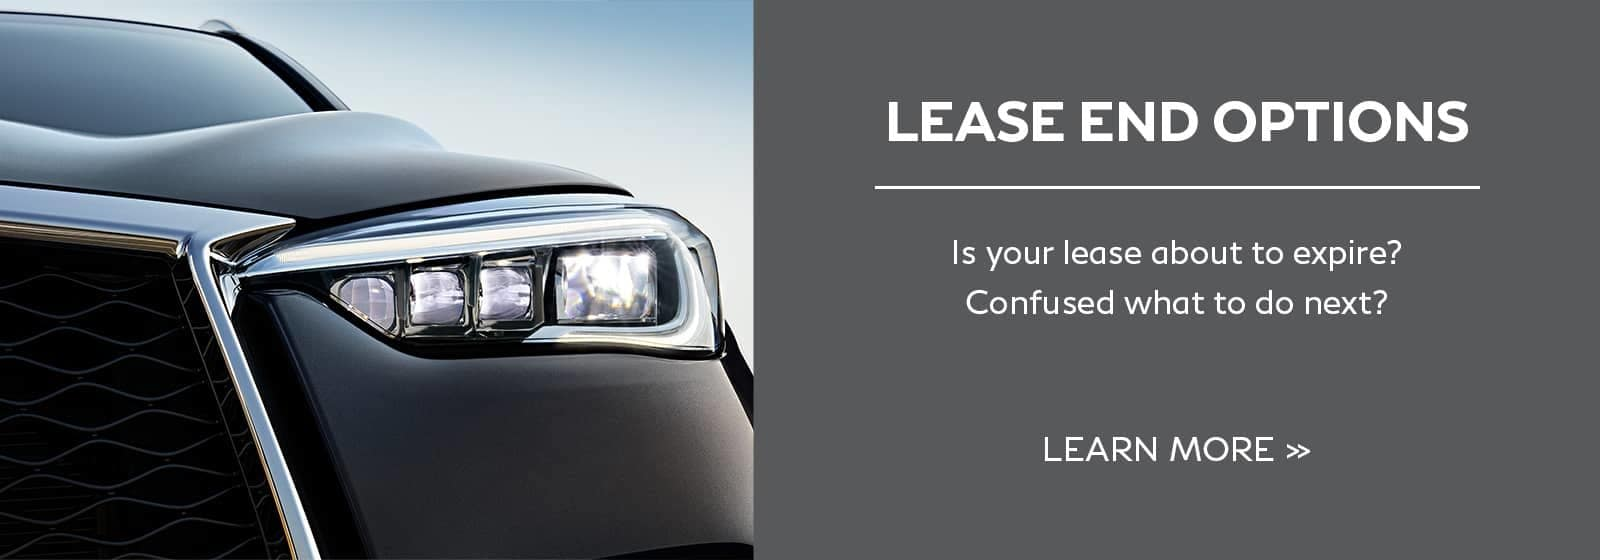 Lease-End-Option-Homepage-Banner-Resized